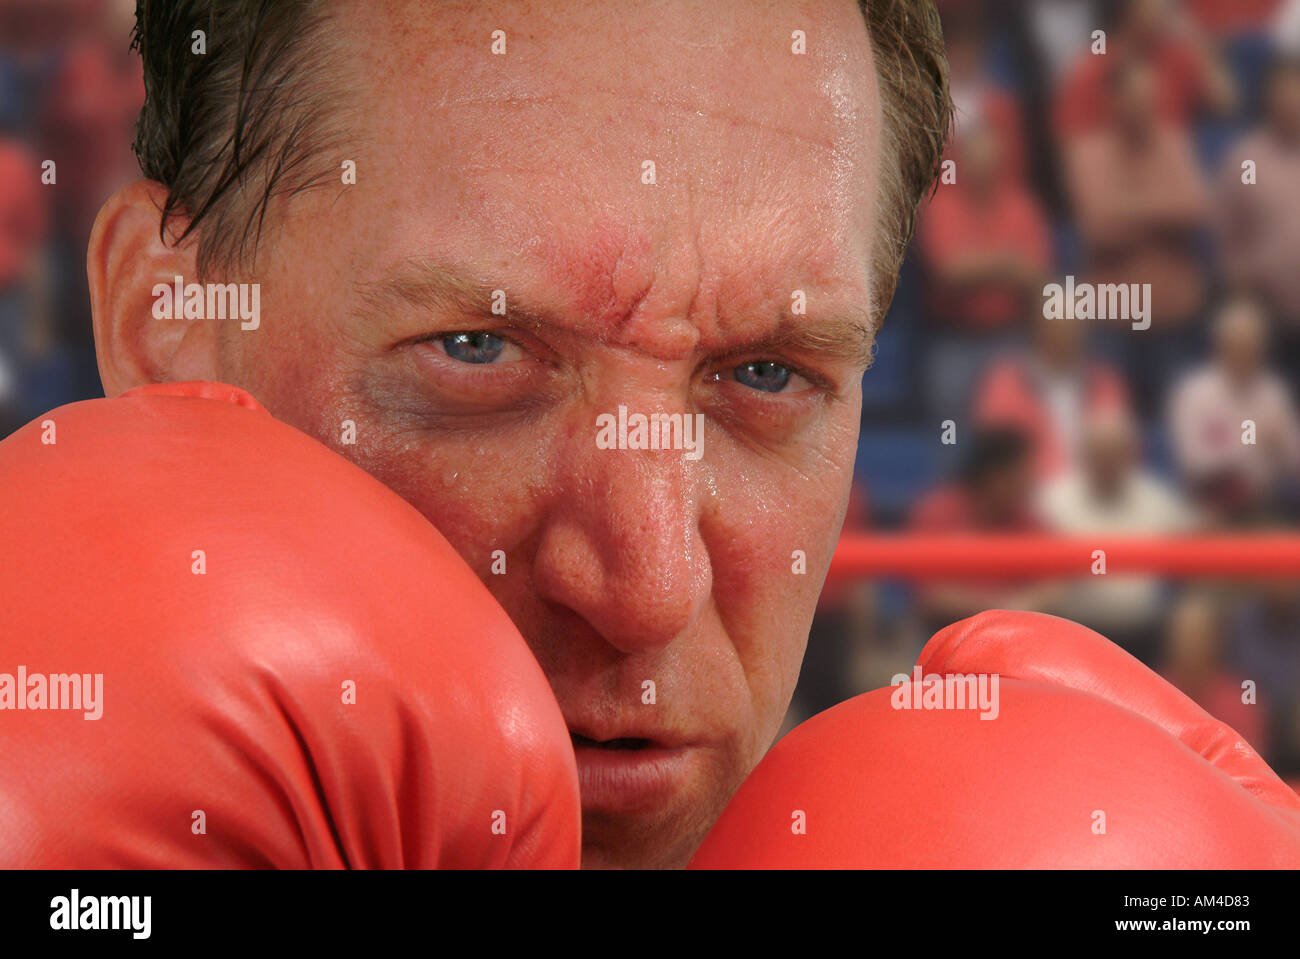 A sweaty boxer in the ring prepares to punch again - Stock Image